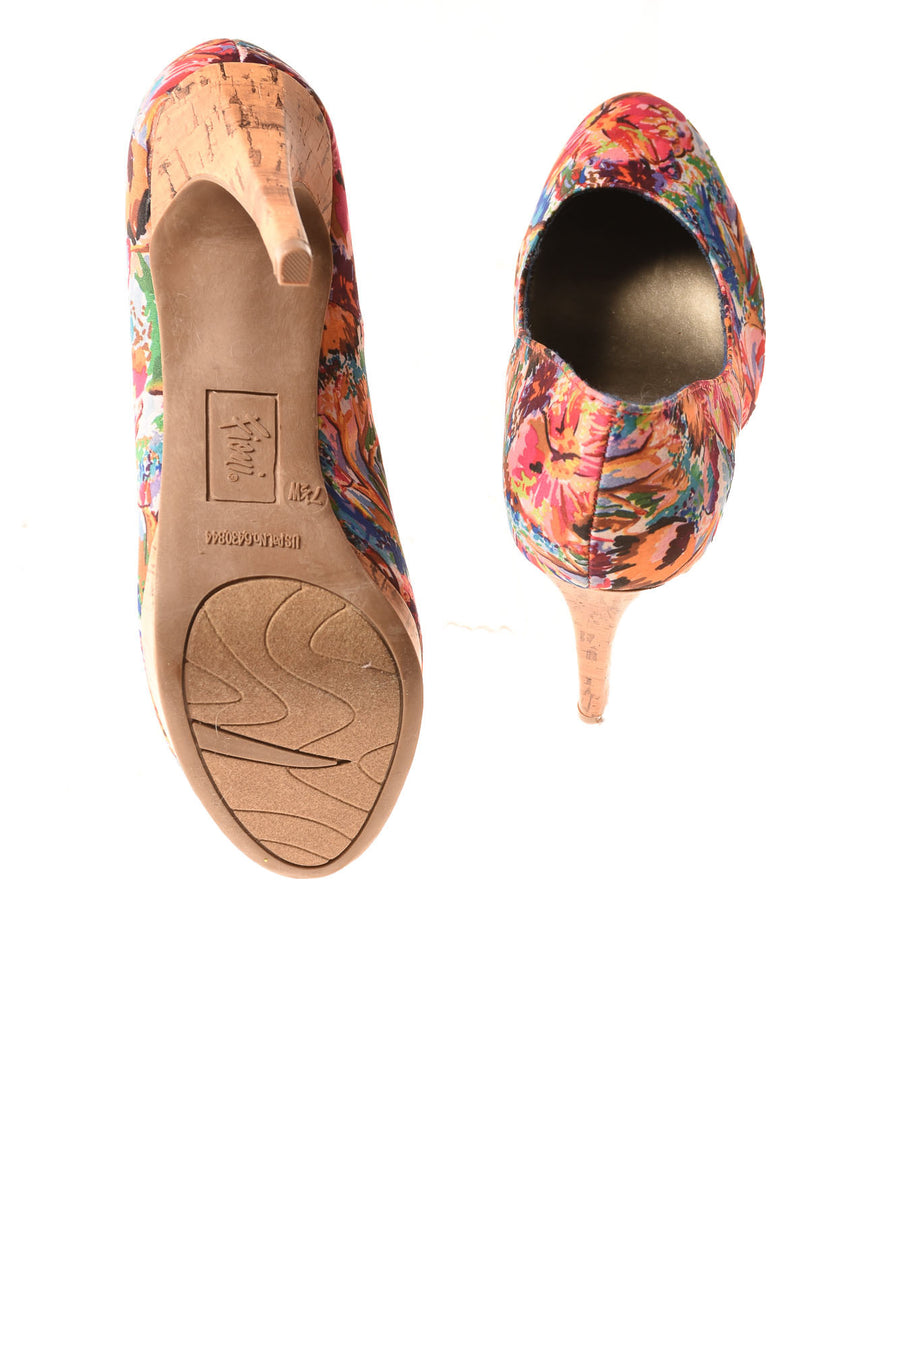 USED Fioni Women's Shoe 7.5 Floral